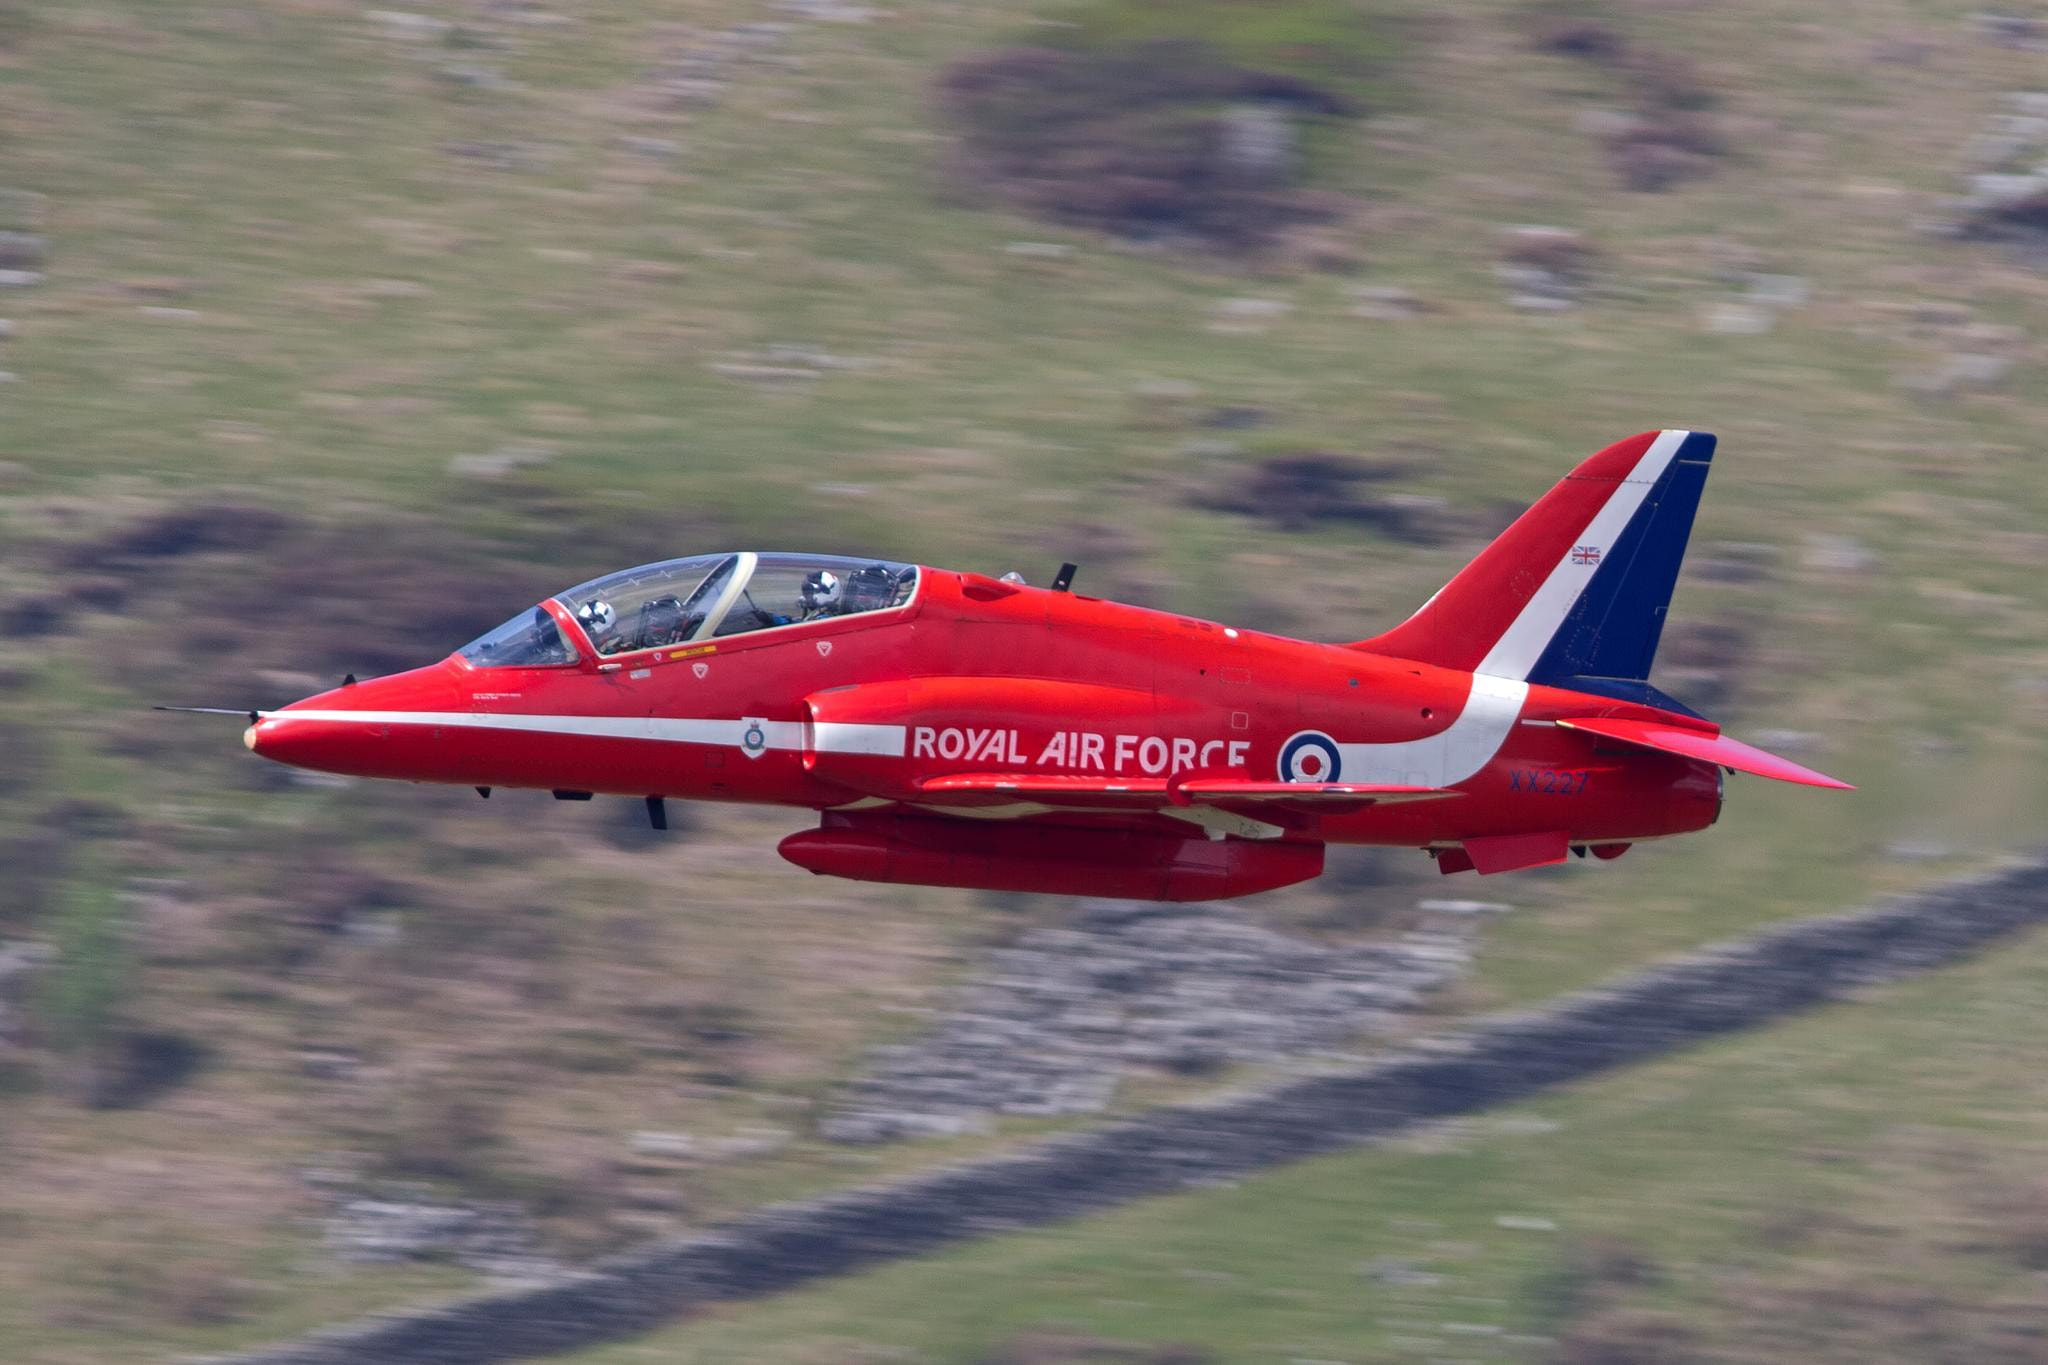 Photograph Royal Air Force Red Arrows Aerobatic Team by Rob Birmingham on 500px